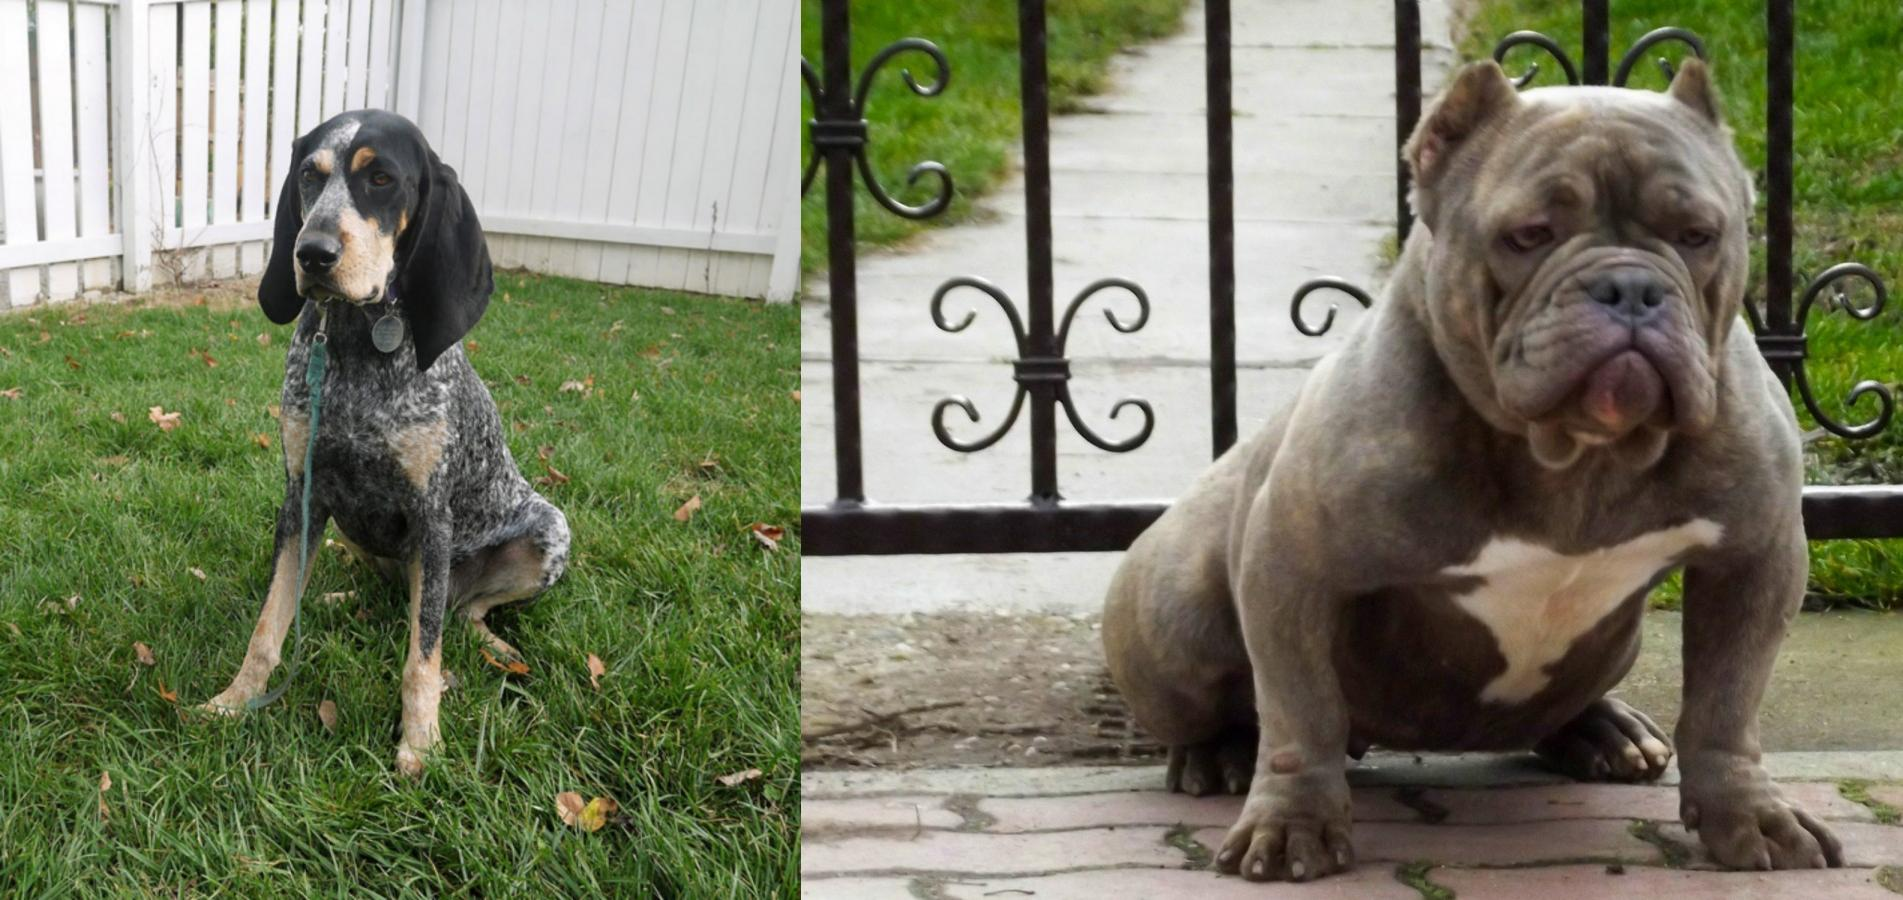 Grand Bleu De Gascogne Vs American Bully Breed Comparison